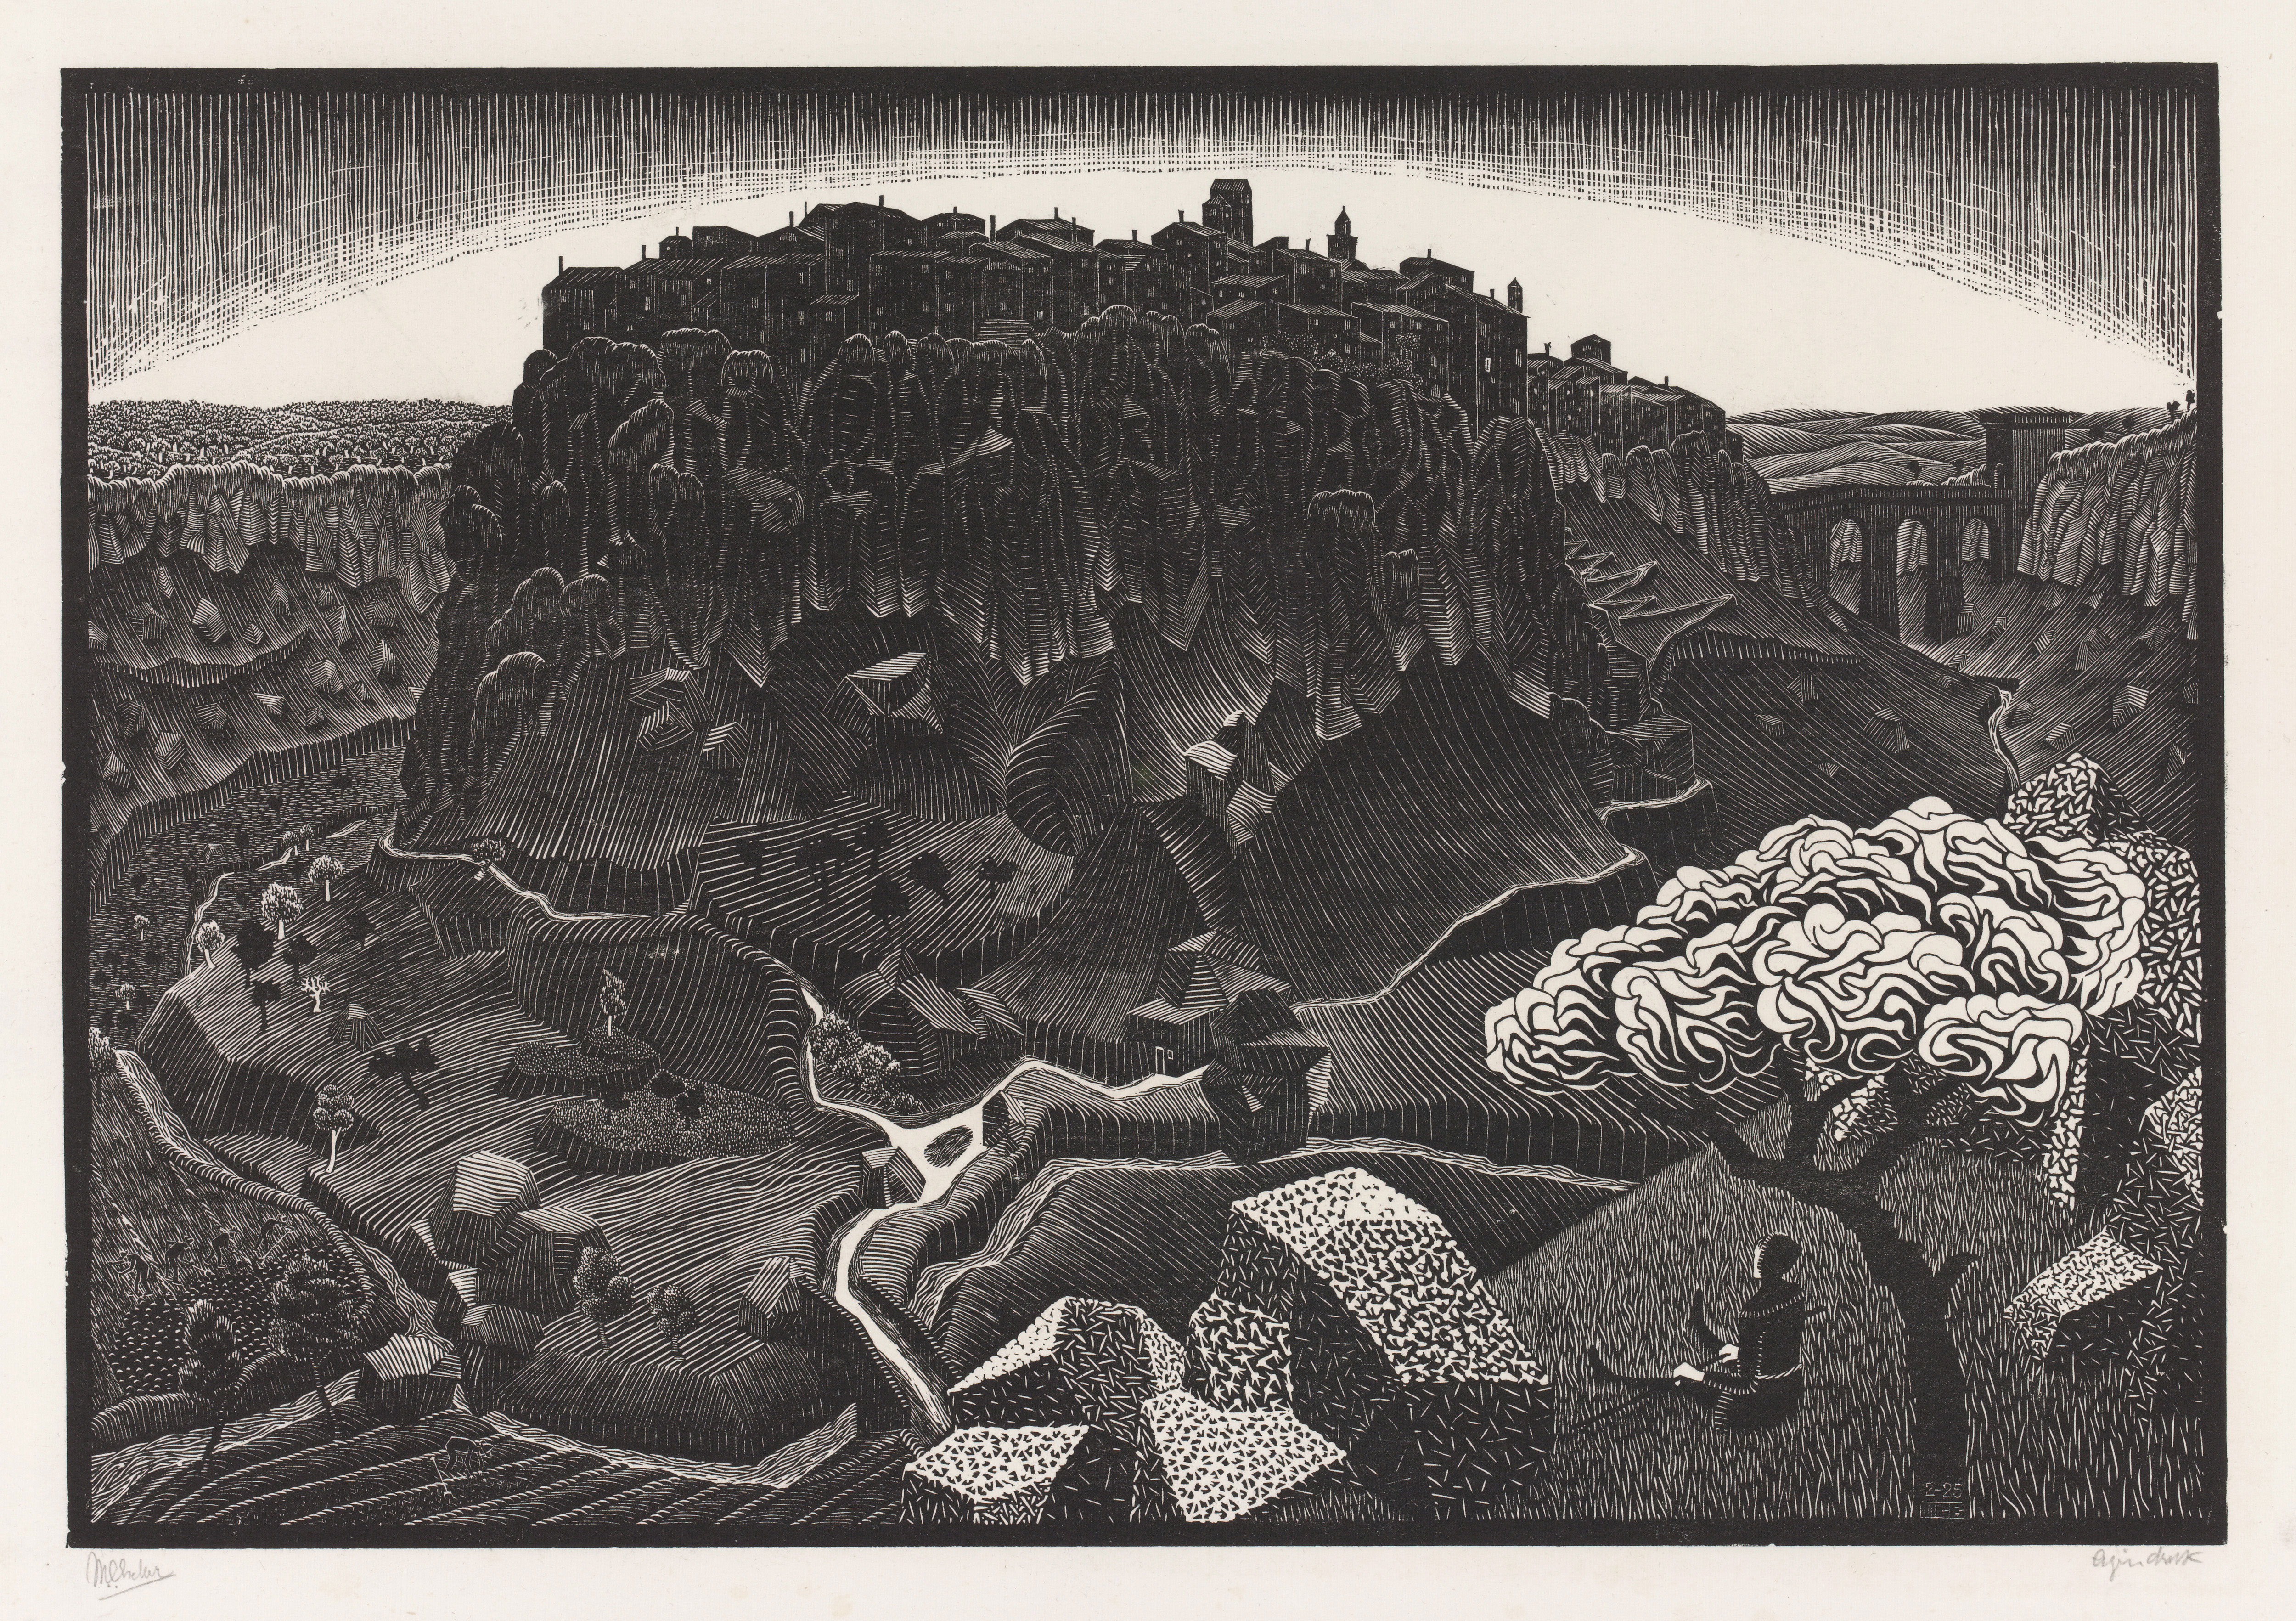 M. C. Escher Vitorchiano nel Cimino February 1925 woodcut Escher Collection, Gemeentemuseum Den Haag, The Hague, the Netherlands © The M. C. Escher Company, the Netherlands. All rights reserved